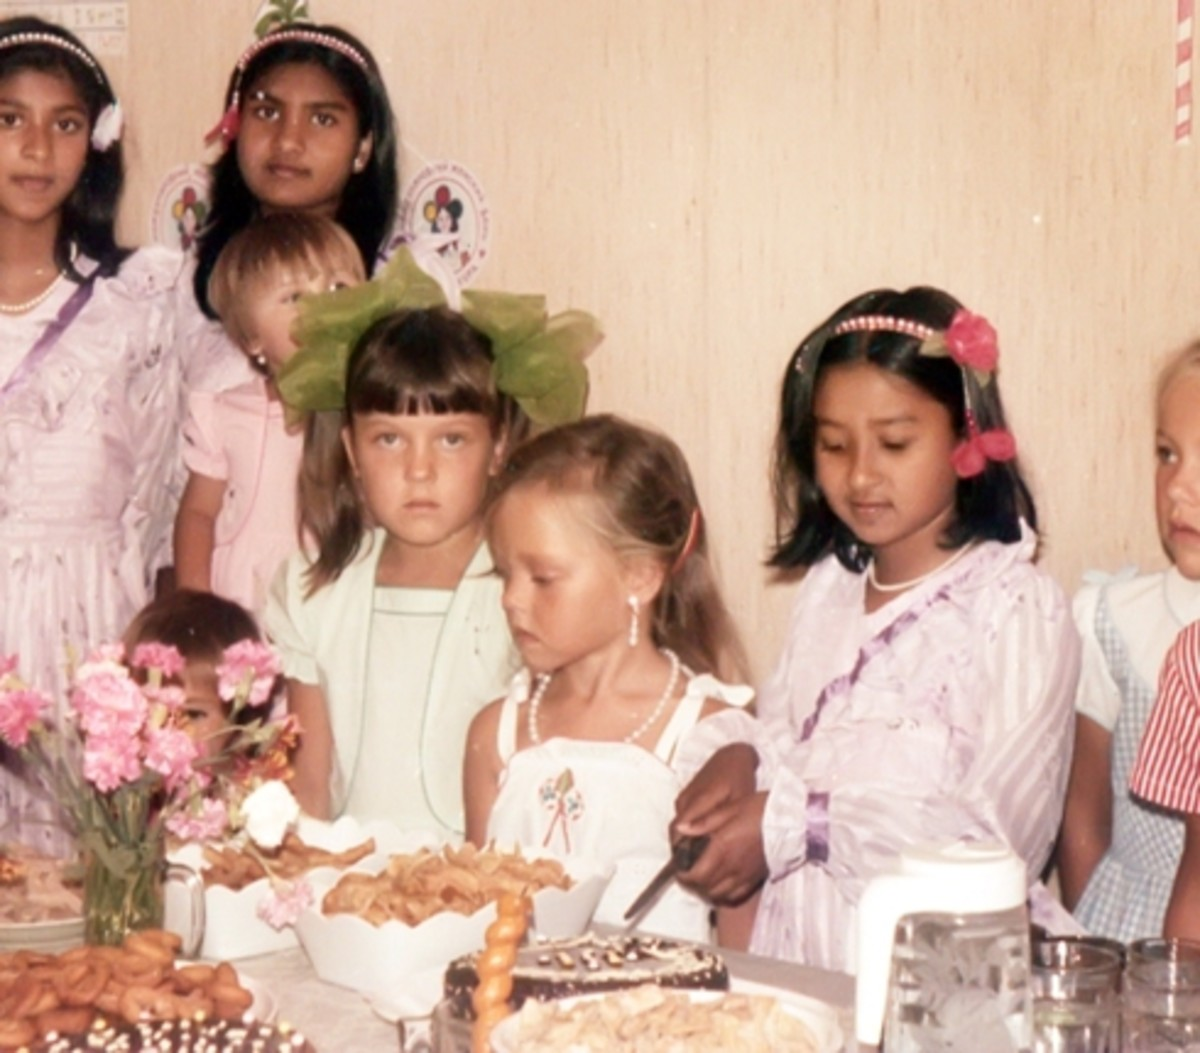 Russian Children, My Sisters and Myself at My Little Sister's Birthday Party